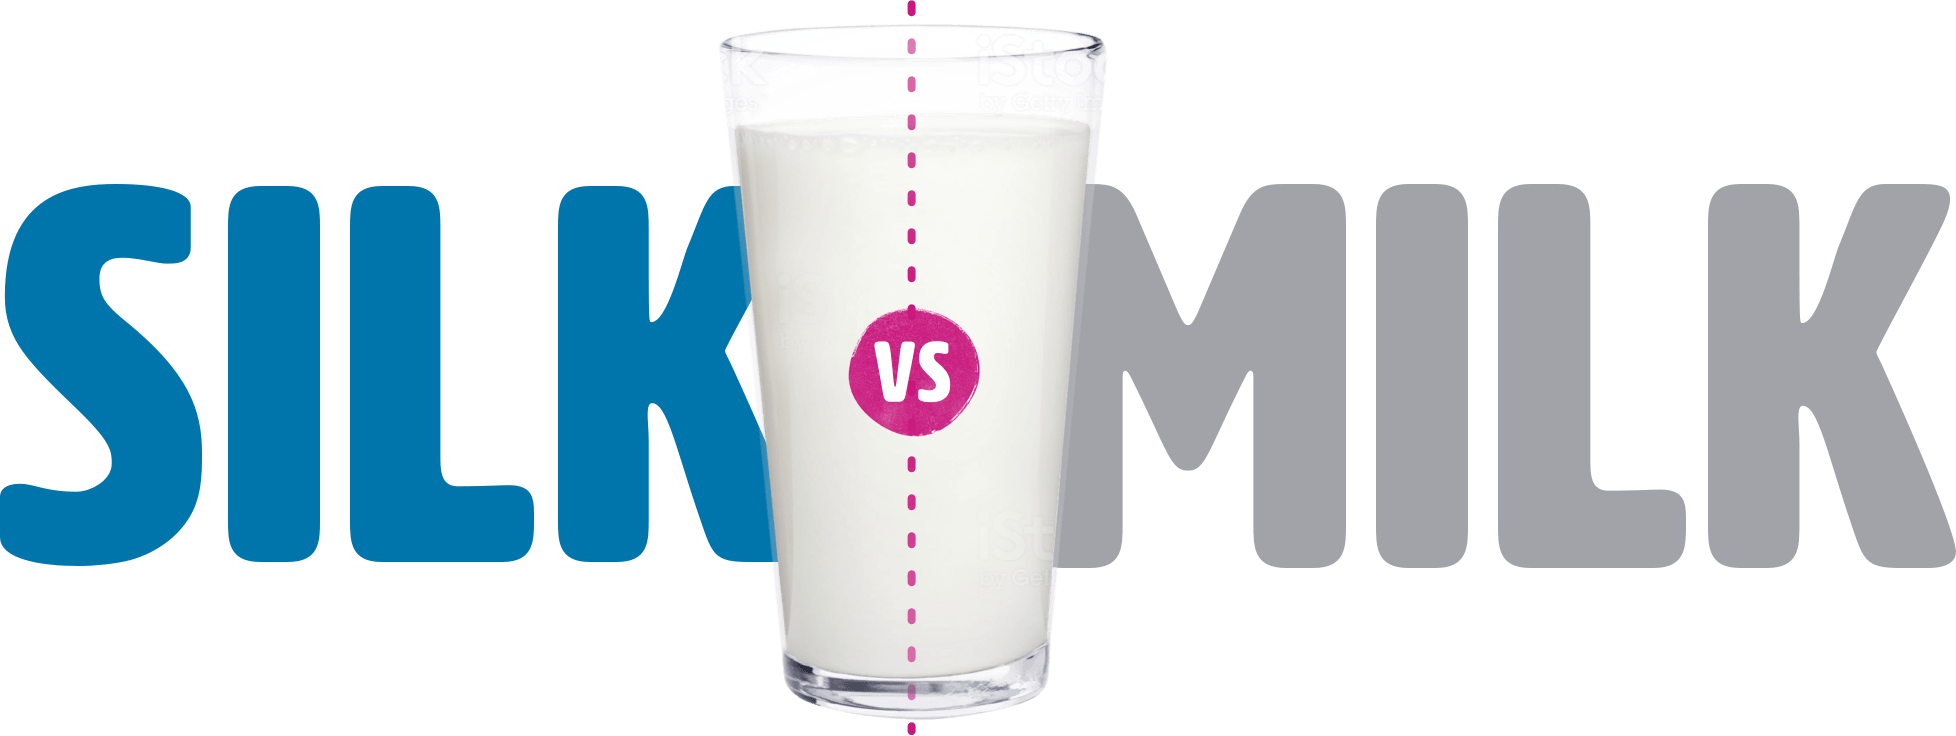 Silk Vs Milk